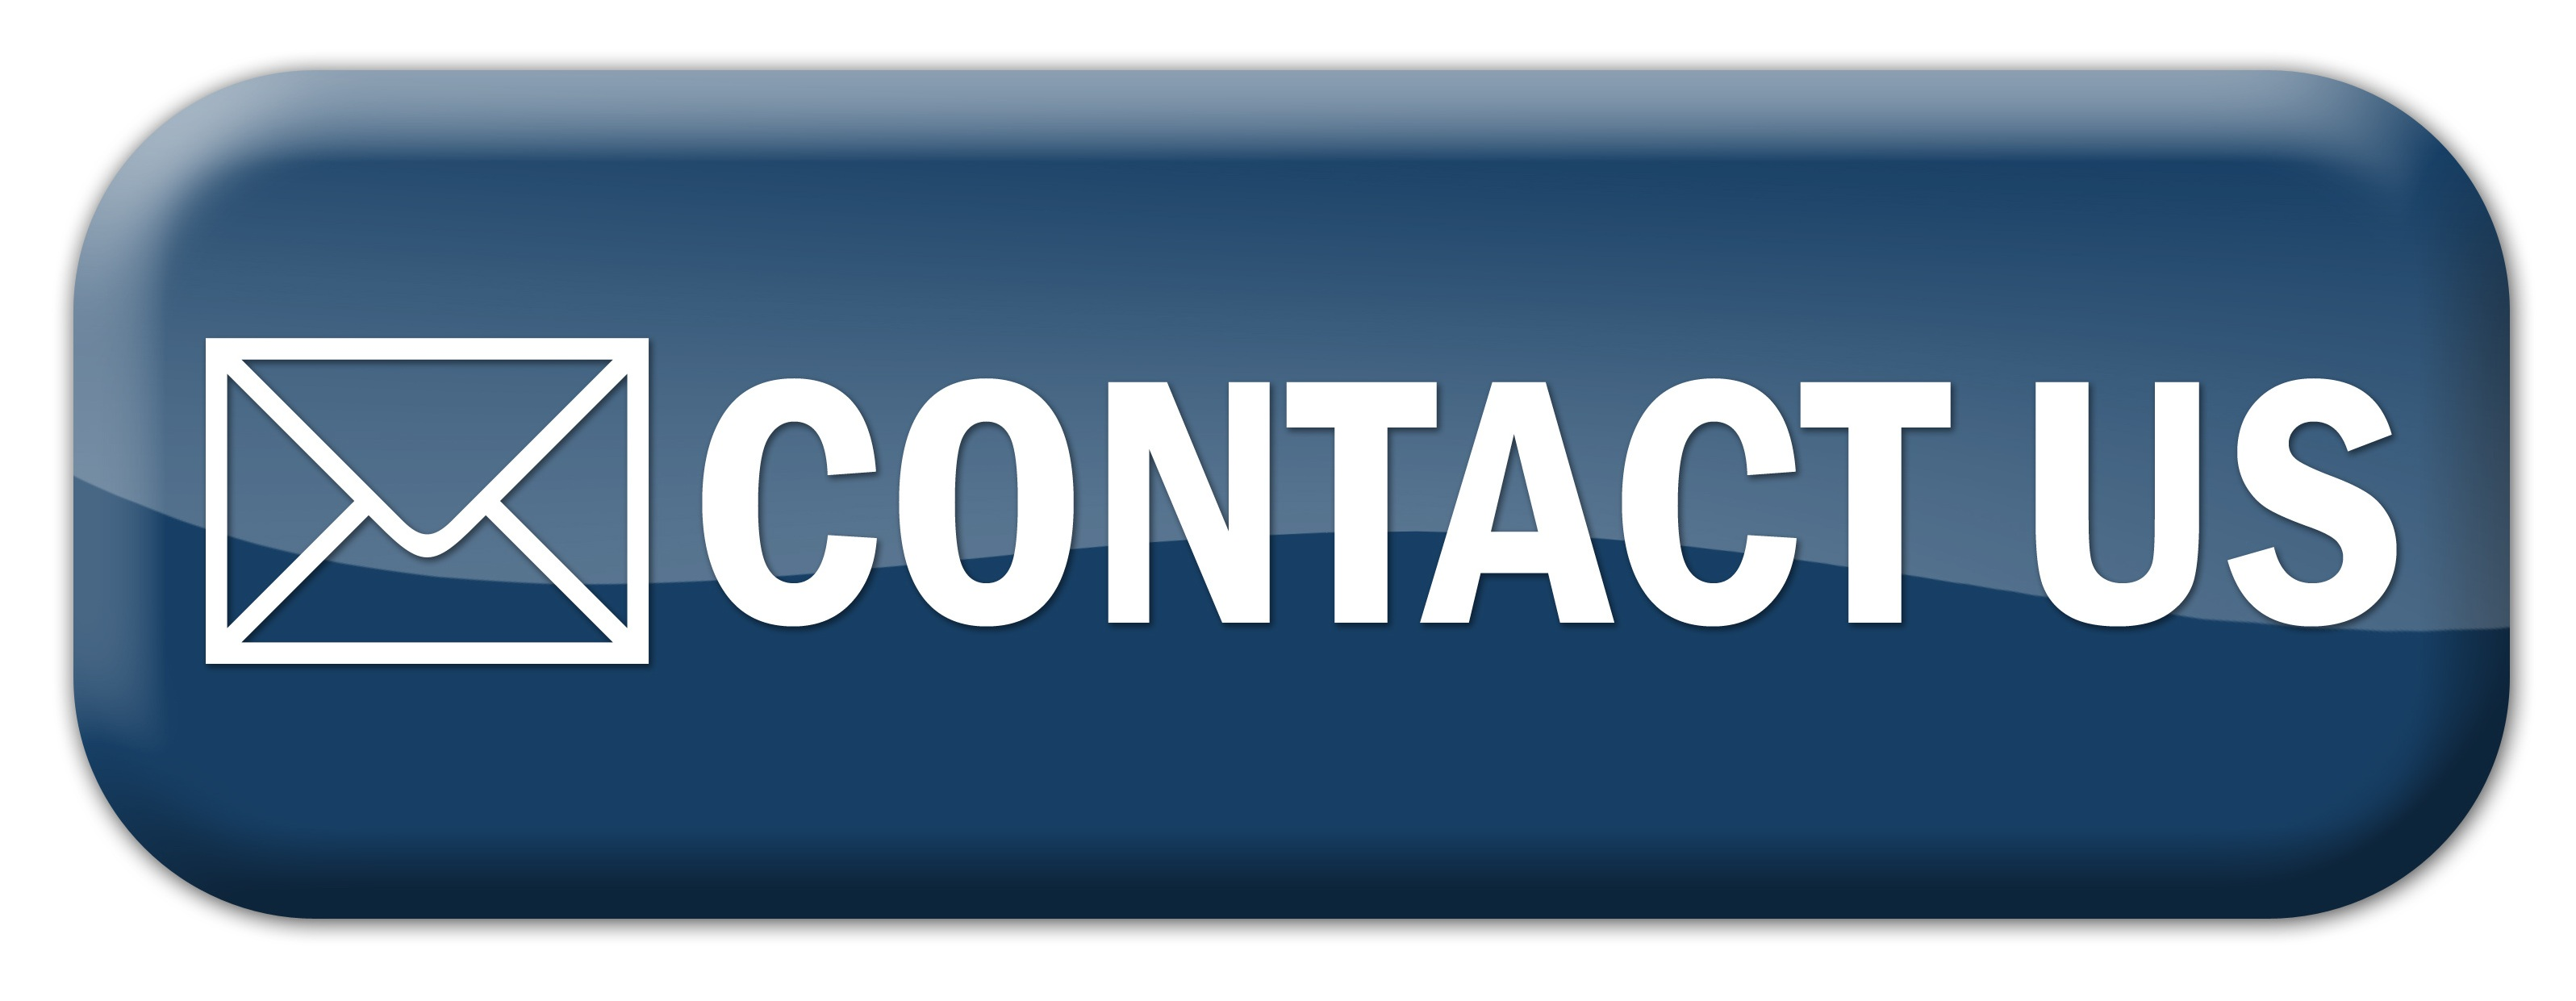 click to contact us now